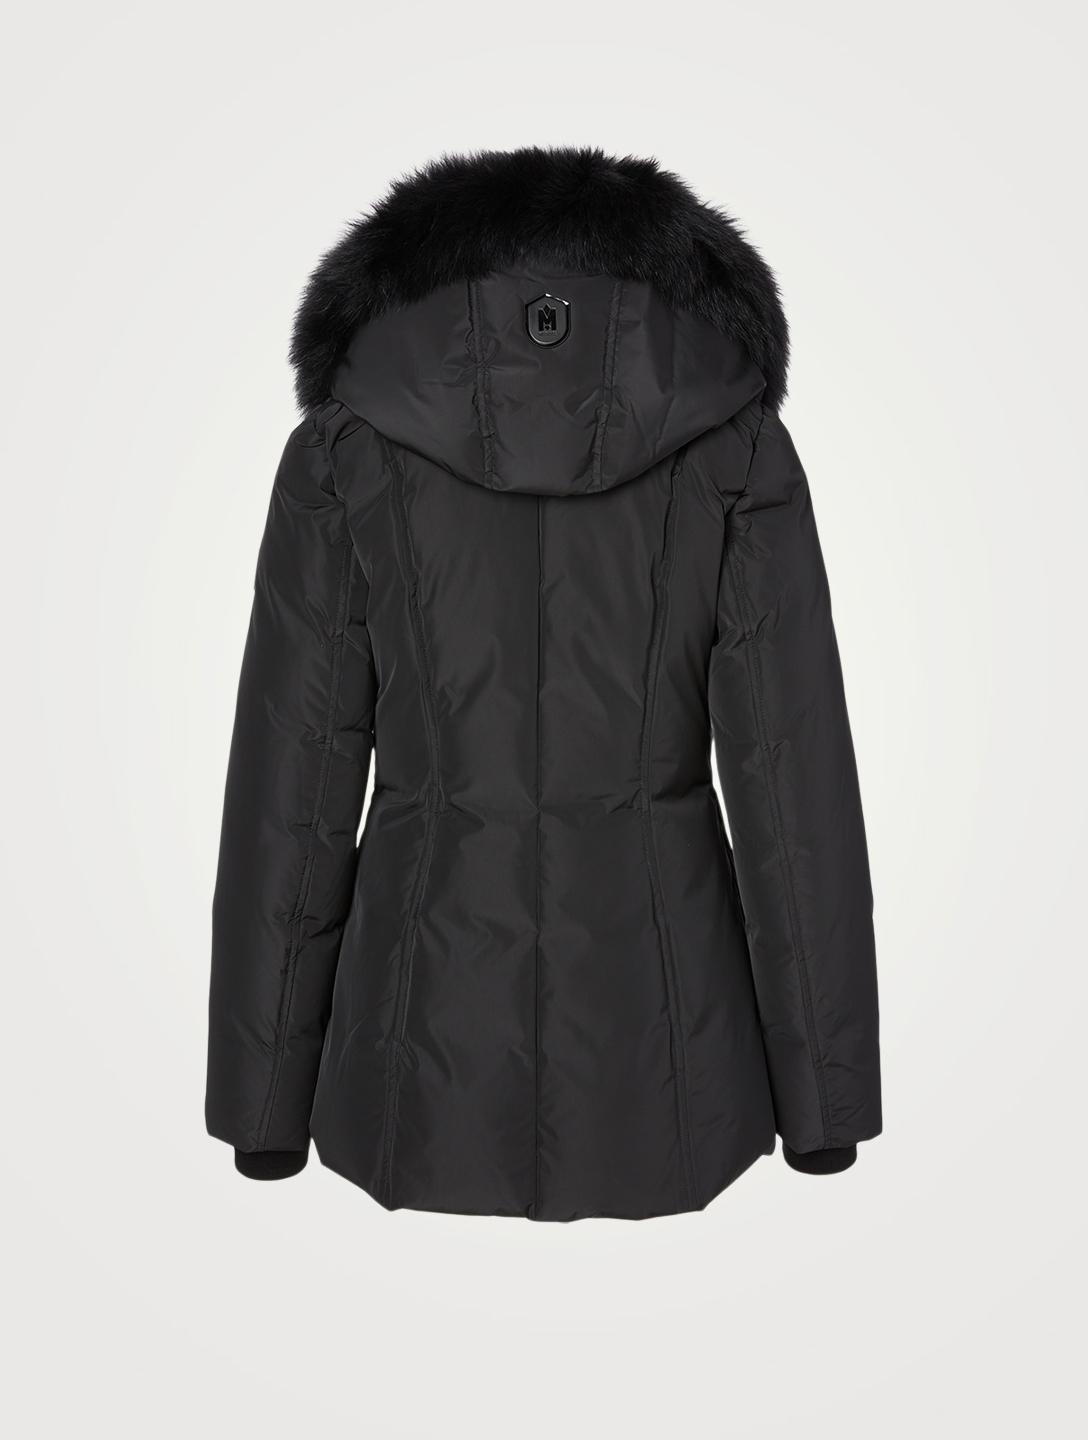 MACKAGE Adali Down Coat With Fur Collar Women's Black